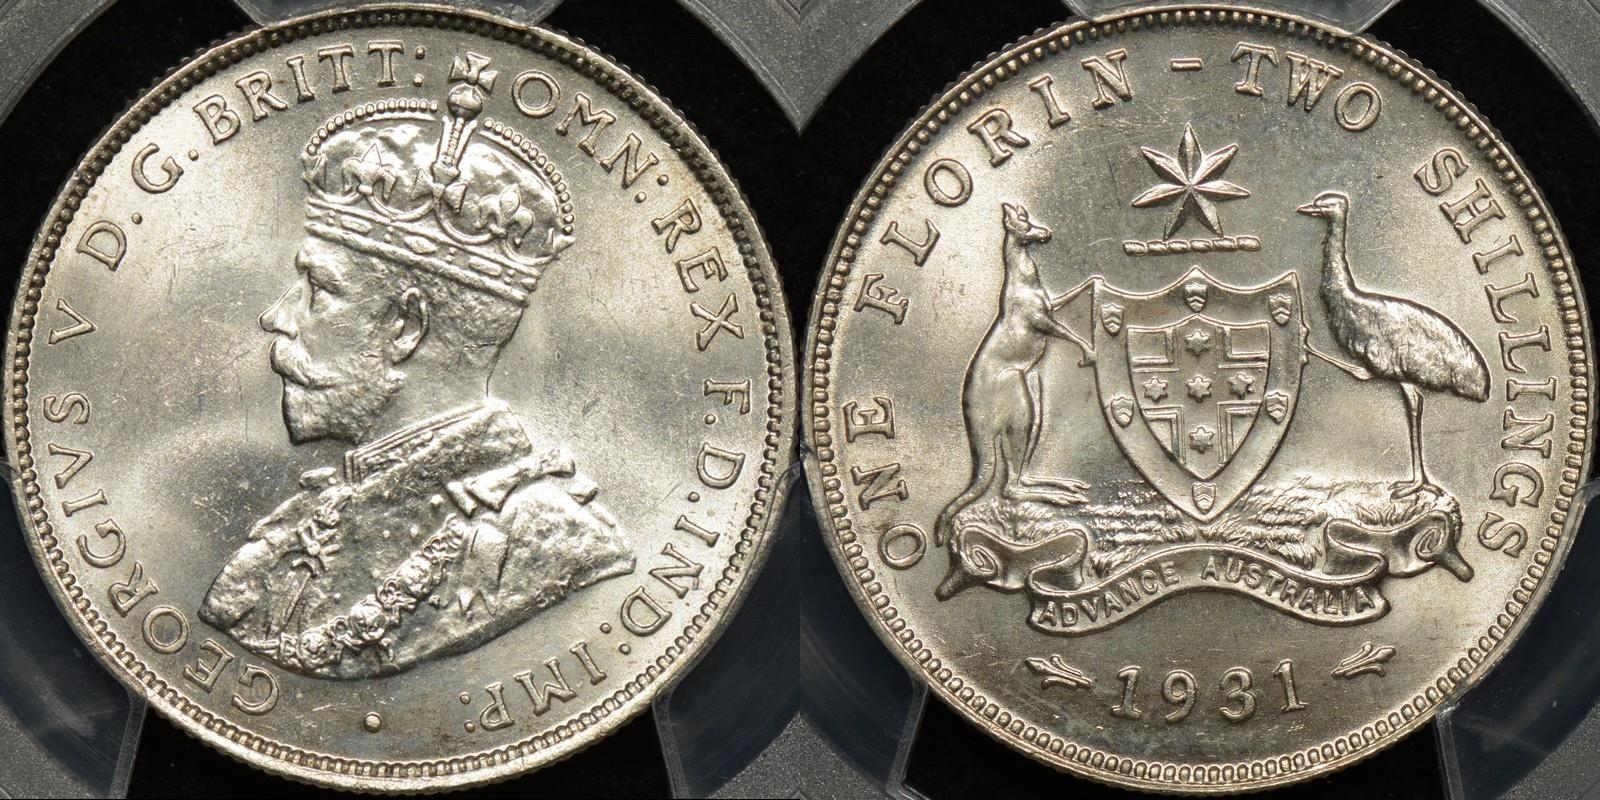 Australia 1931m florin 2s Choice Uncirculated PCGS MS64